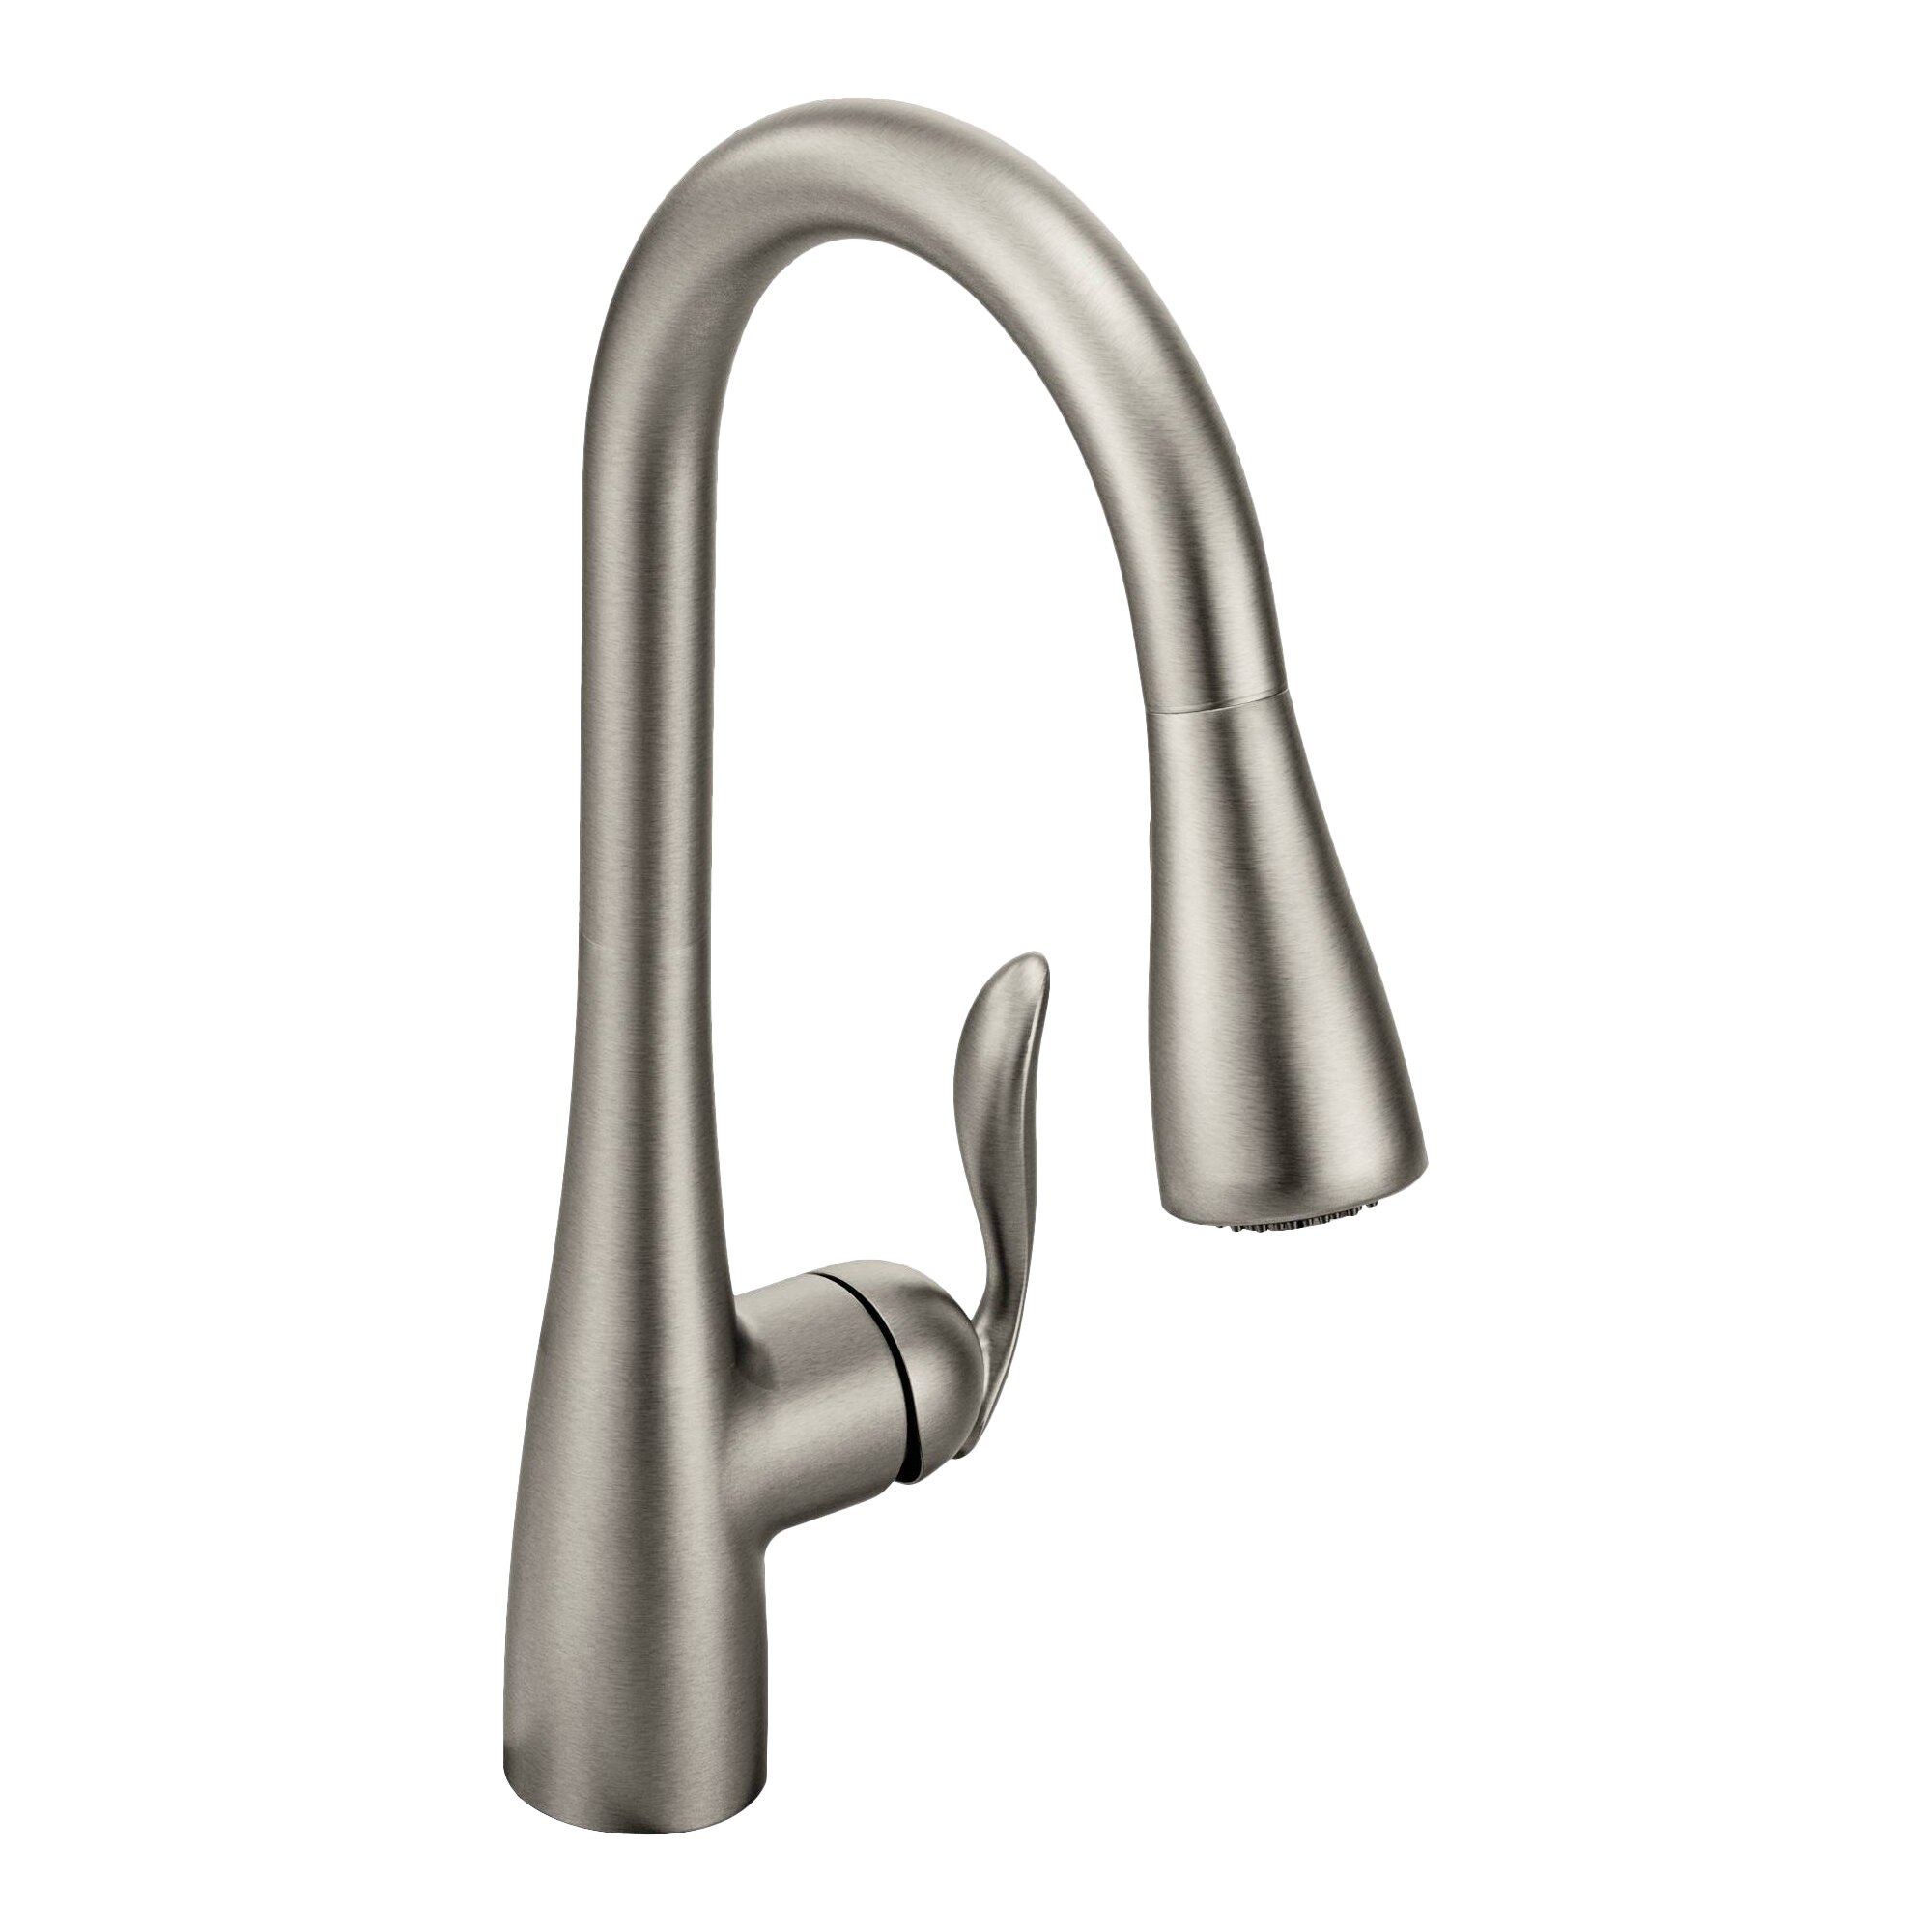 style brands delta of kitchen kohler pre parts size best lowes commercial restaurant down faucets rinse faucet dst pull full sssd stunning bathroom reviews touchless